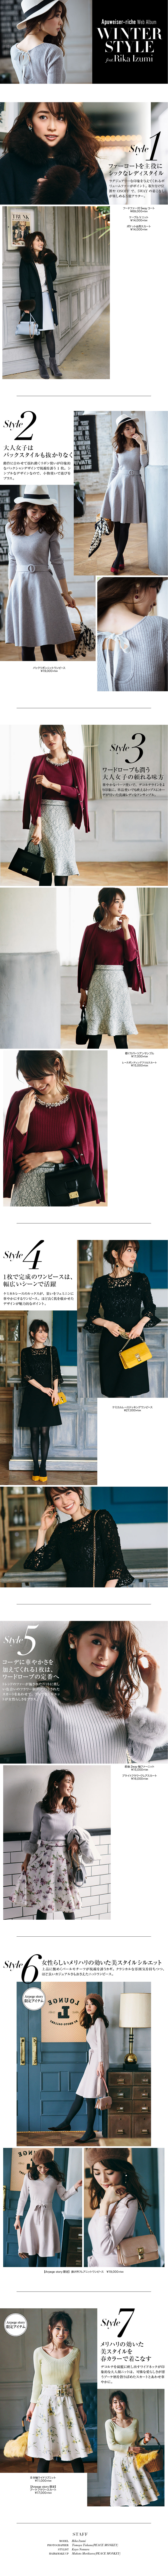 WEB ALBUM vol.25 - Apuweiser-riche × 泉里香